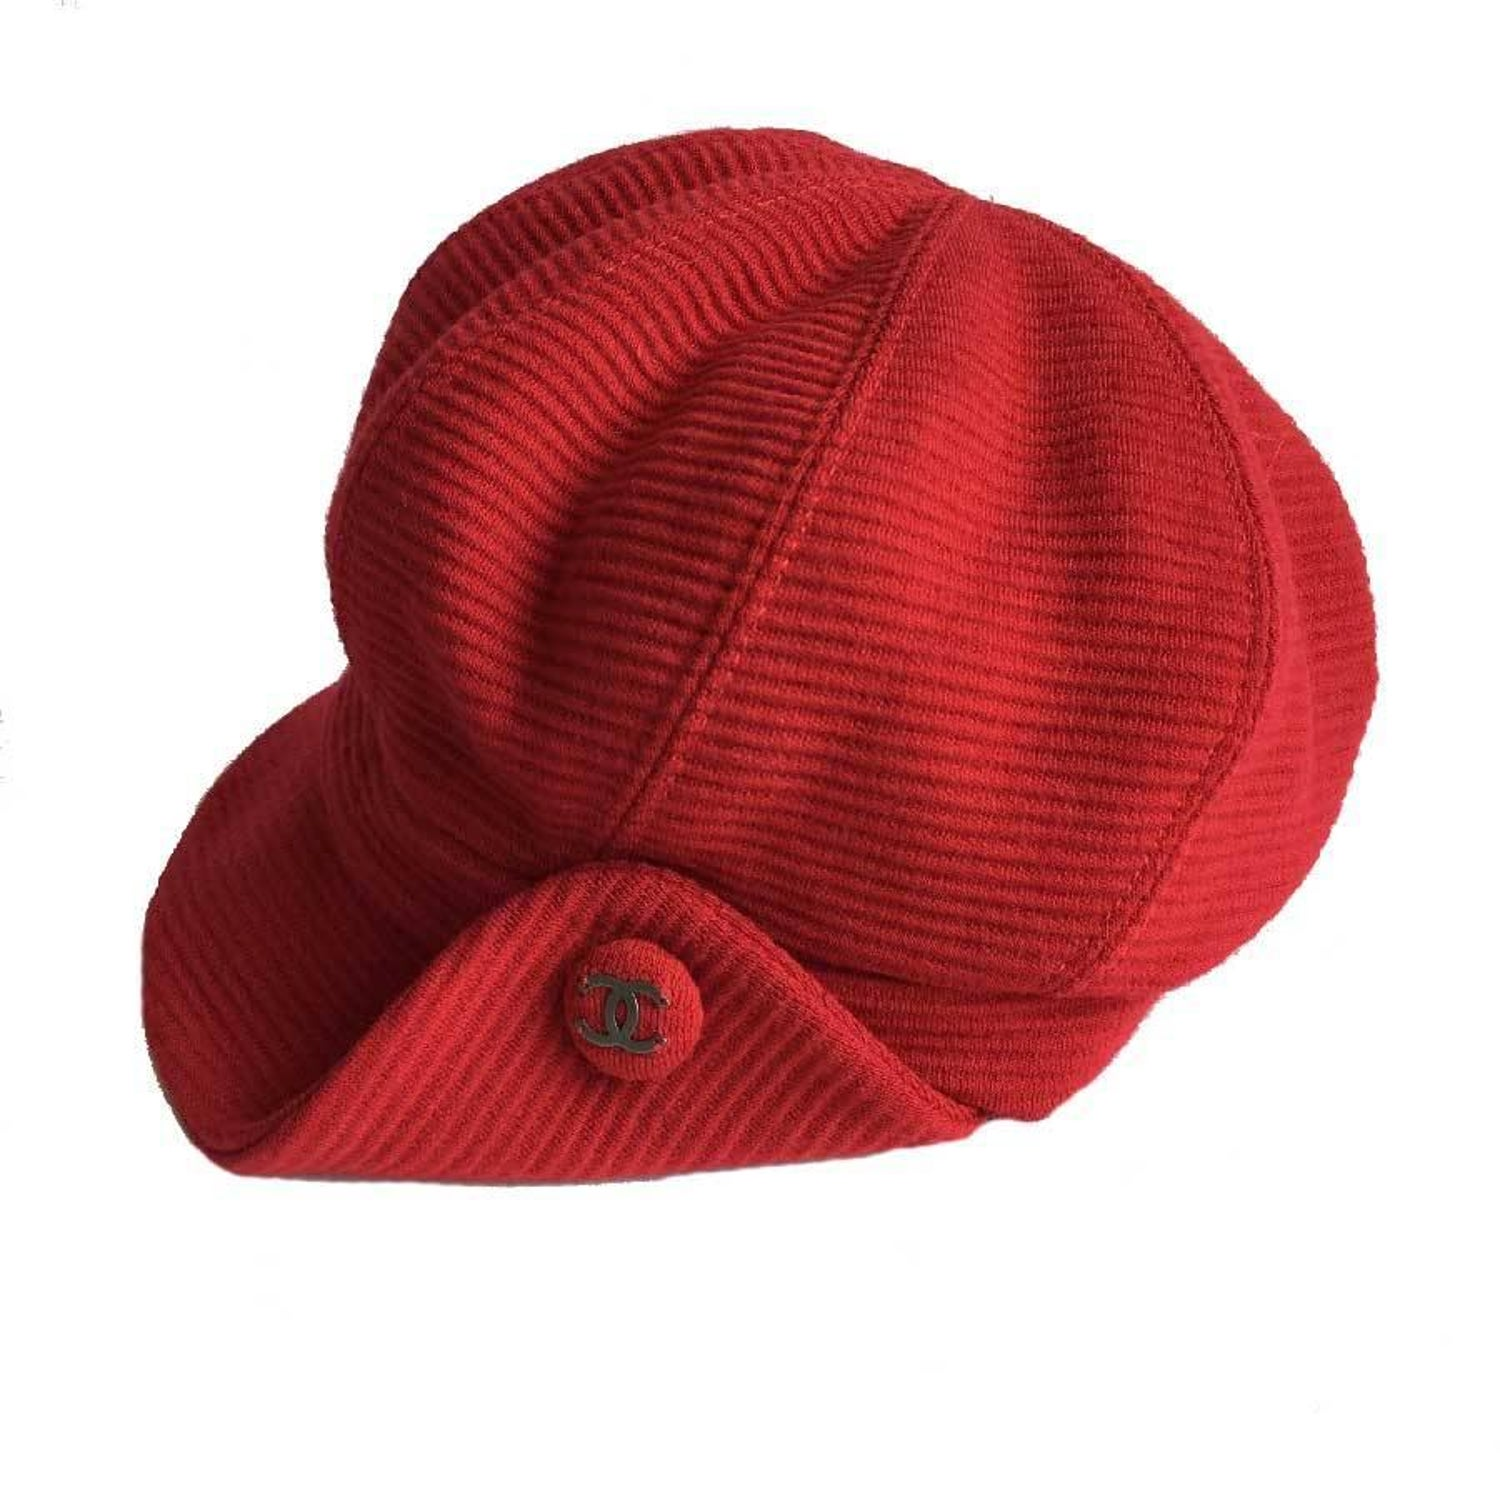 7c64bdb05f0 CHANEL Cap in Red Wool Size 57 For Sale at 1stdibs